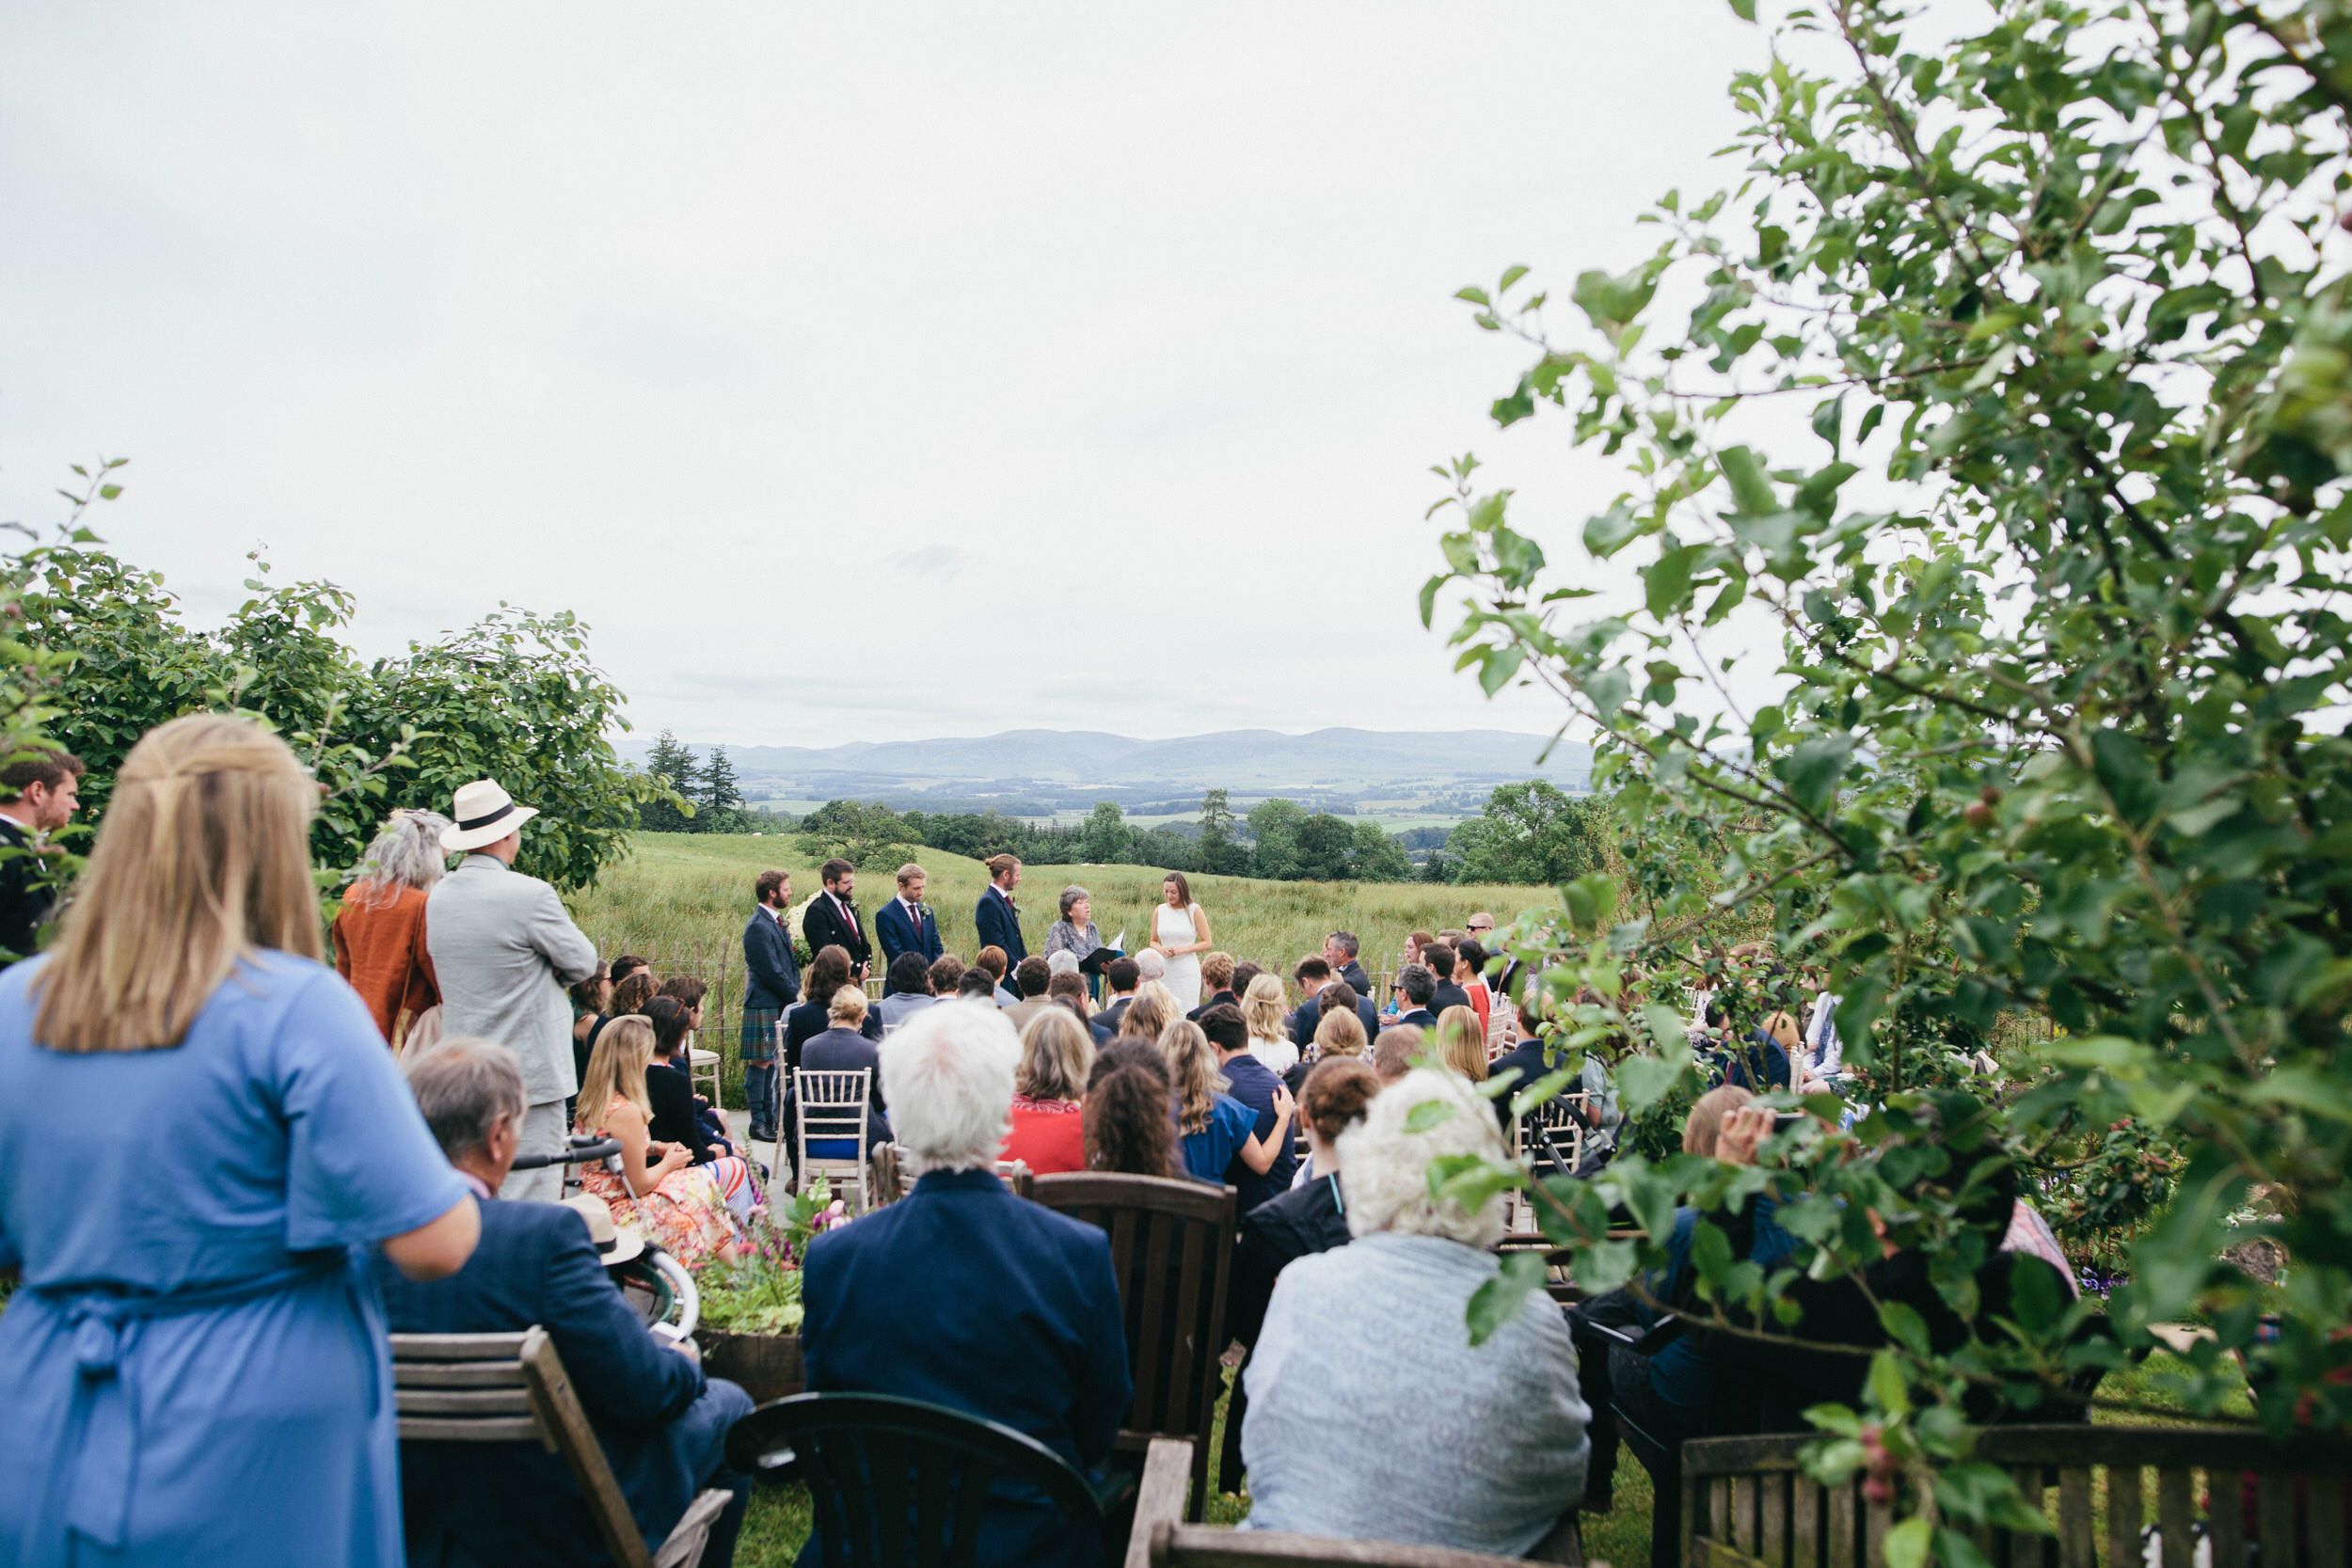 Alternative Quirky Wedding Photographer Scotland Borders Edinburgh 021.jpg